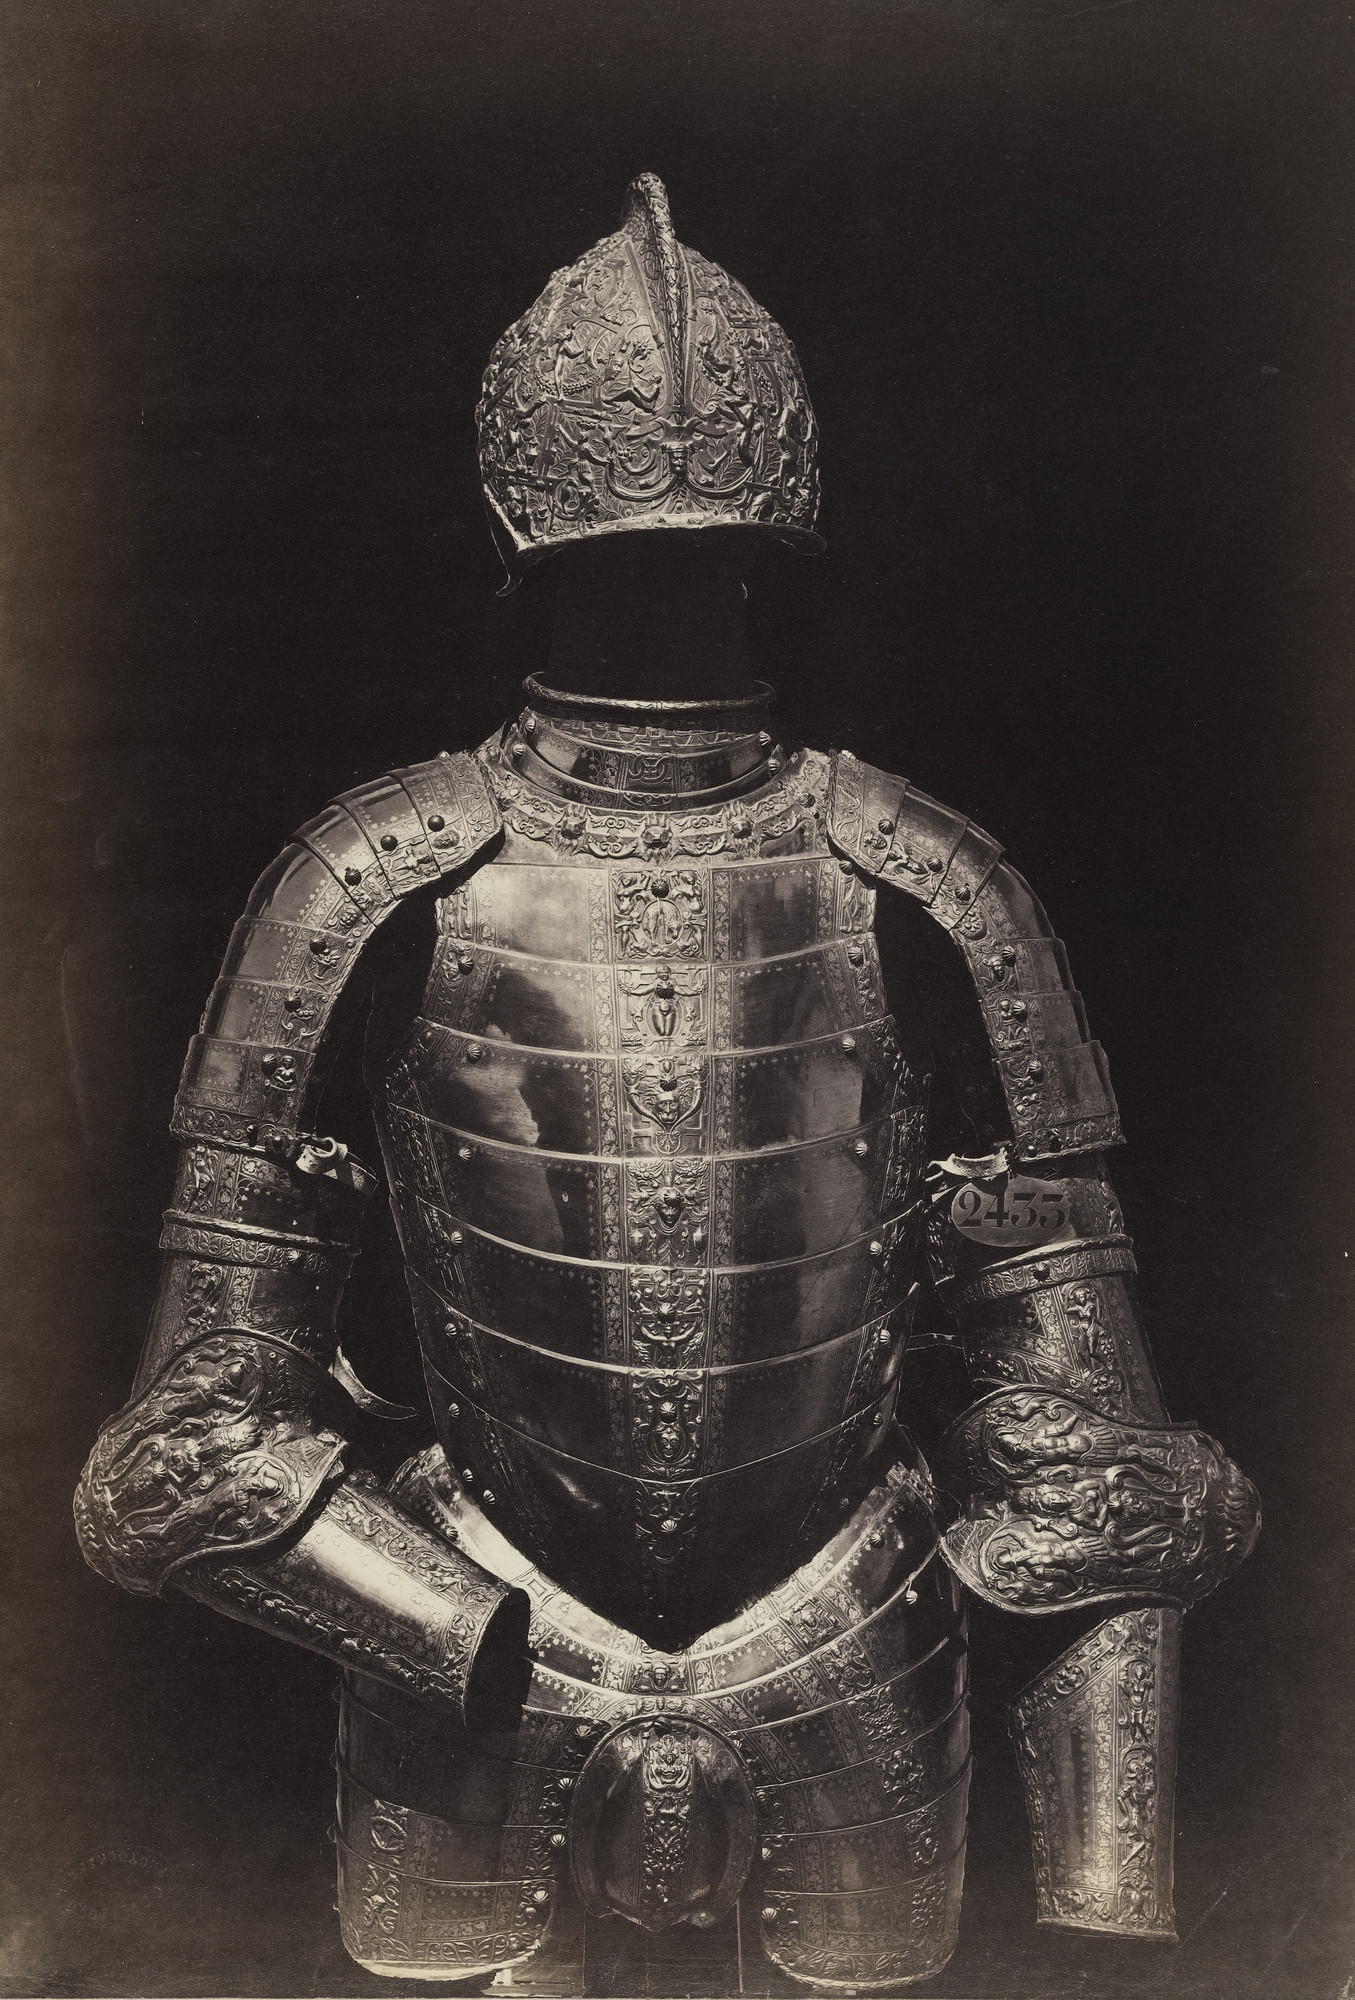 Charles Clifford. Suit of Armor, Spanish, Sixteenth Century. c. 1857